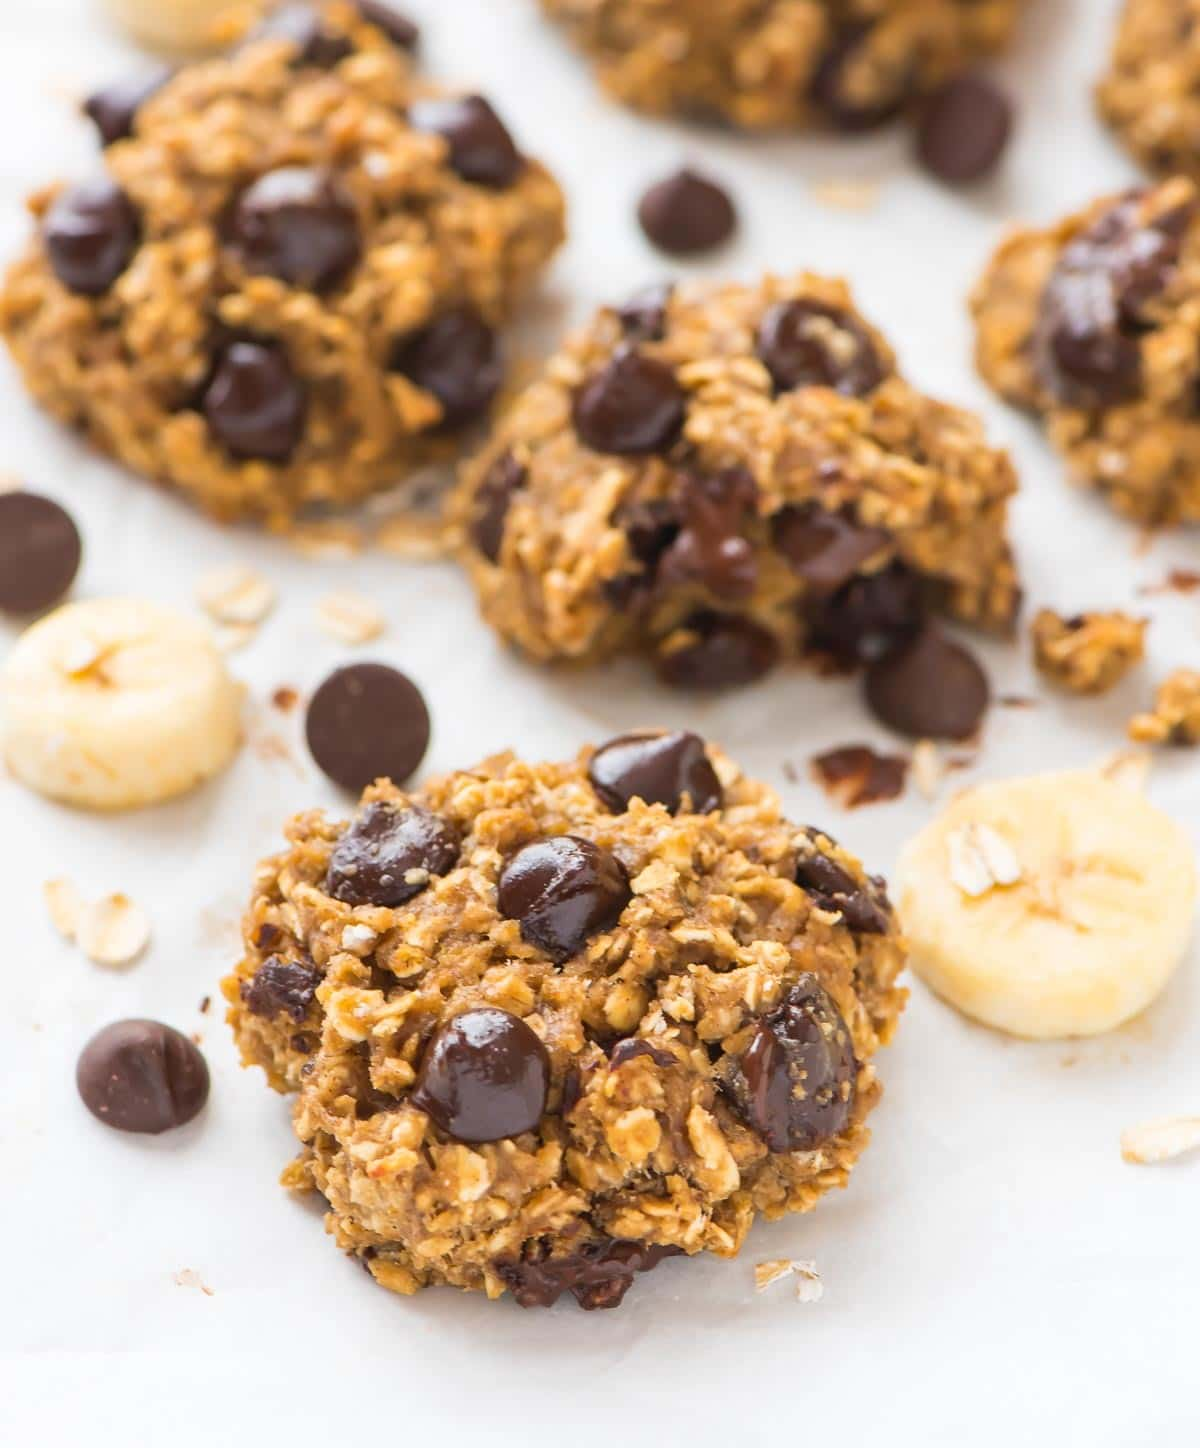 Ridiculously healthy Oatmeal Banana Cookies recipe. Perfect healthy dessert any time you have a craving.